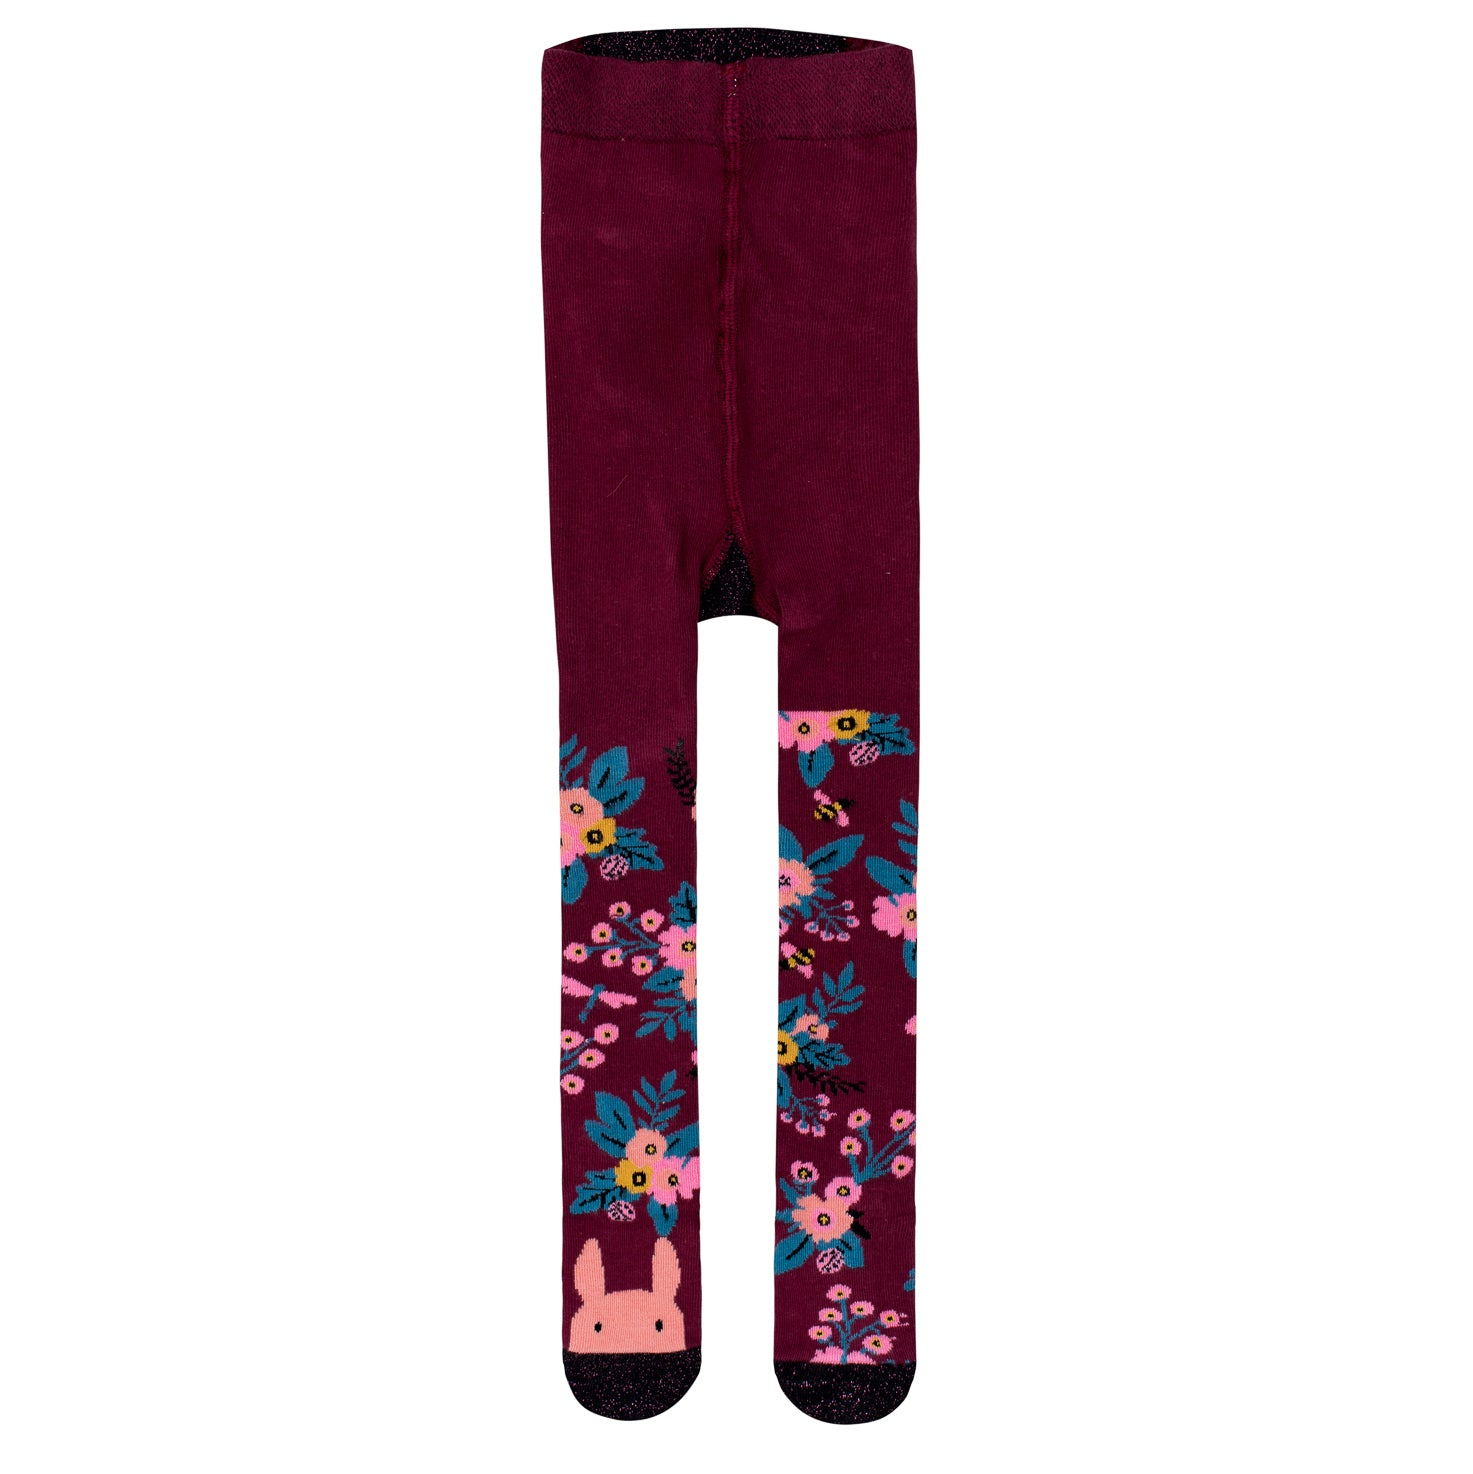 Plum Garden Girls Tights